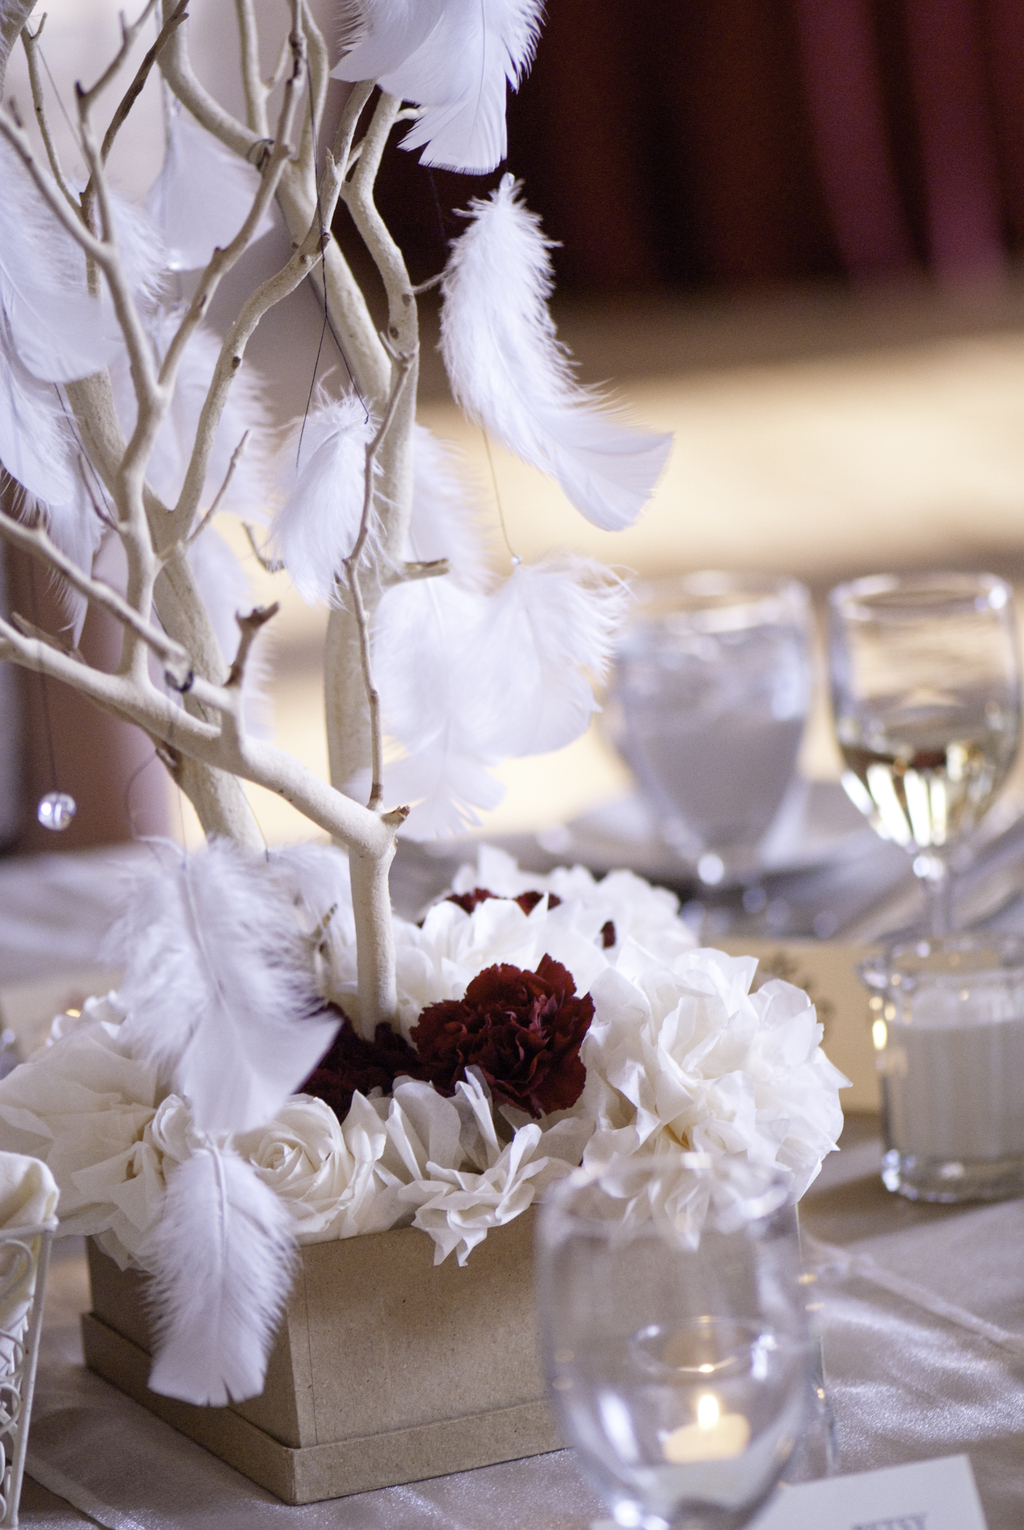 Whimsical-wedding-centerpieces-with-branches-feathers-roses-carnations.full